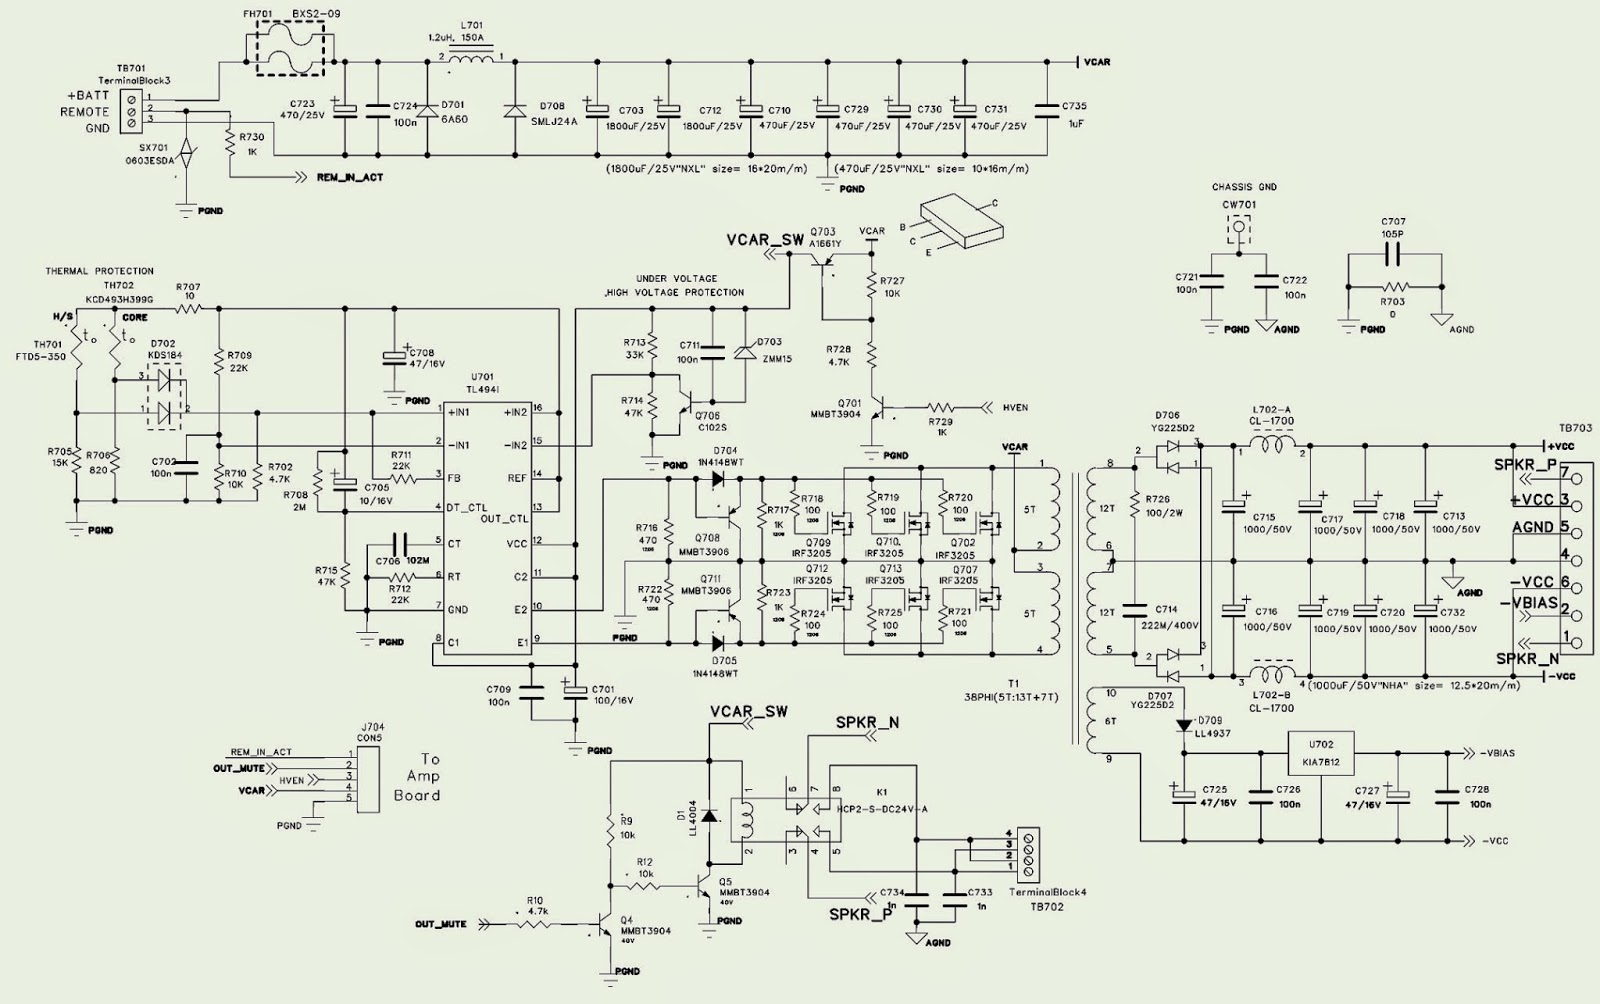 Various Diagram Jbl Ms A5001 Schematic Power Amplifier And Smps Usb Fm Transmitter Circuit Amp Click On The Schematics To Zoom In